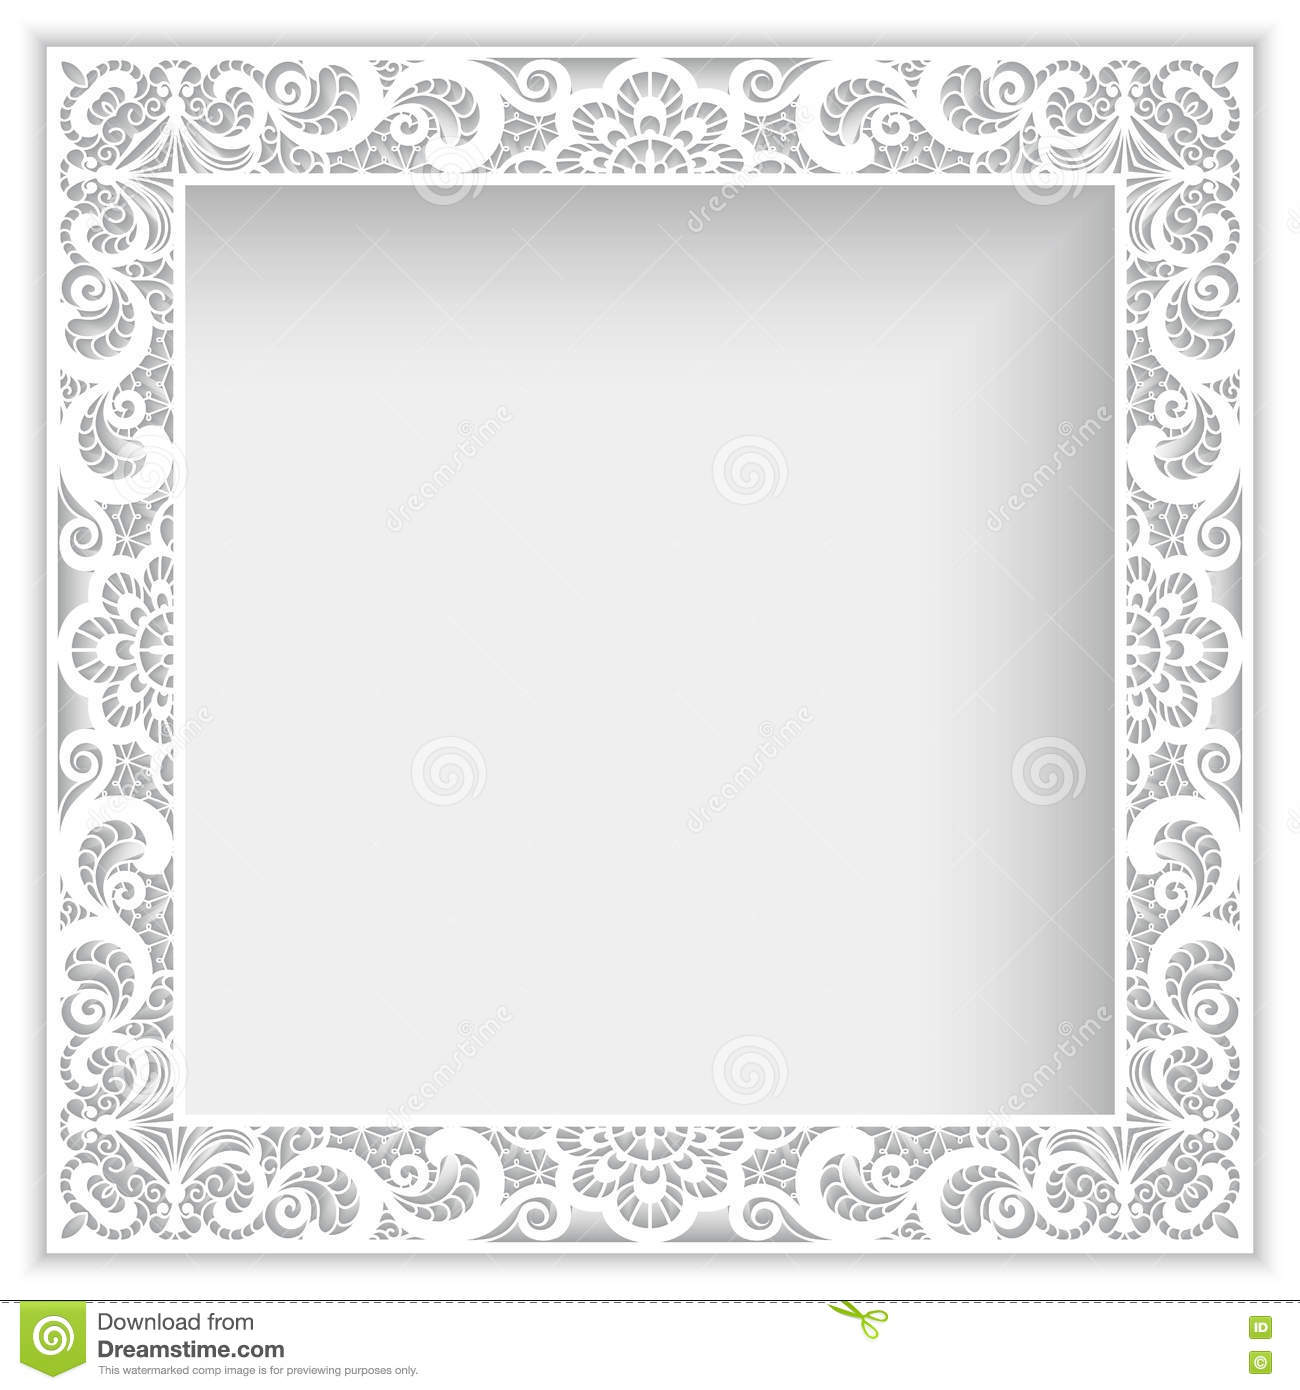 Square Frame With Cutout Paper Lace Border Stock Vector ...